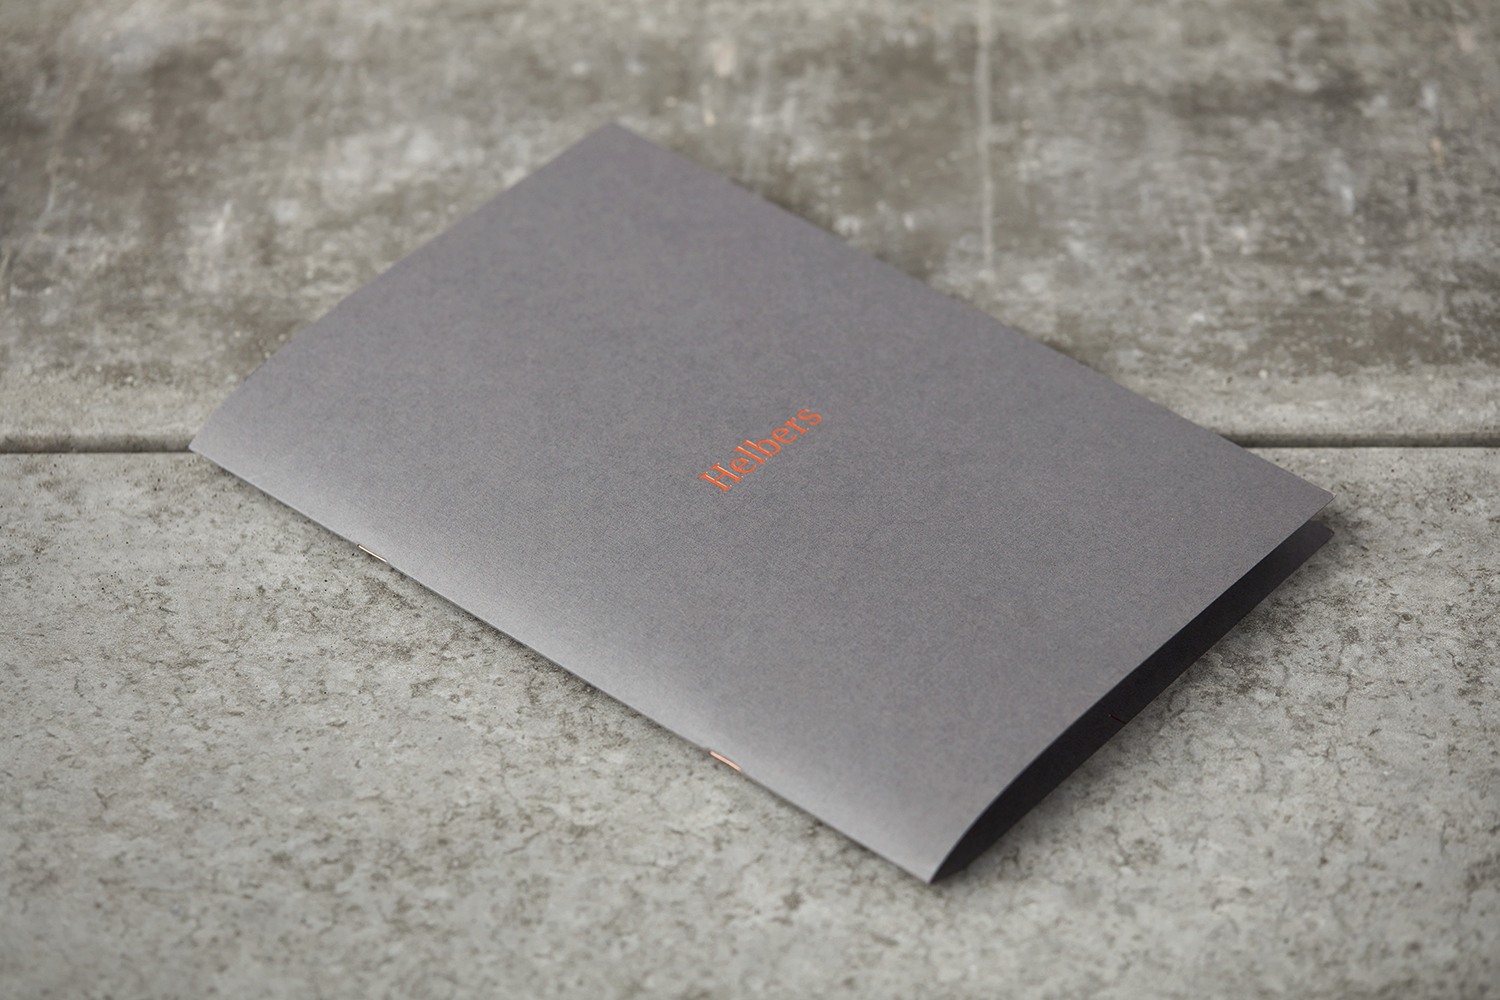 Brand identity and lookbook with copper foil print finish by Leeds-based graphic design studio Only for Parisian menswear label Helbers